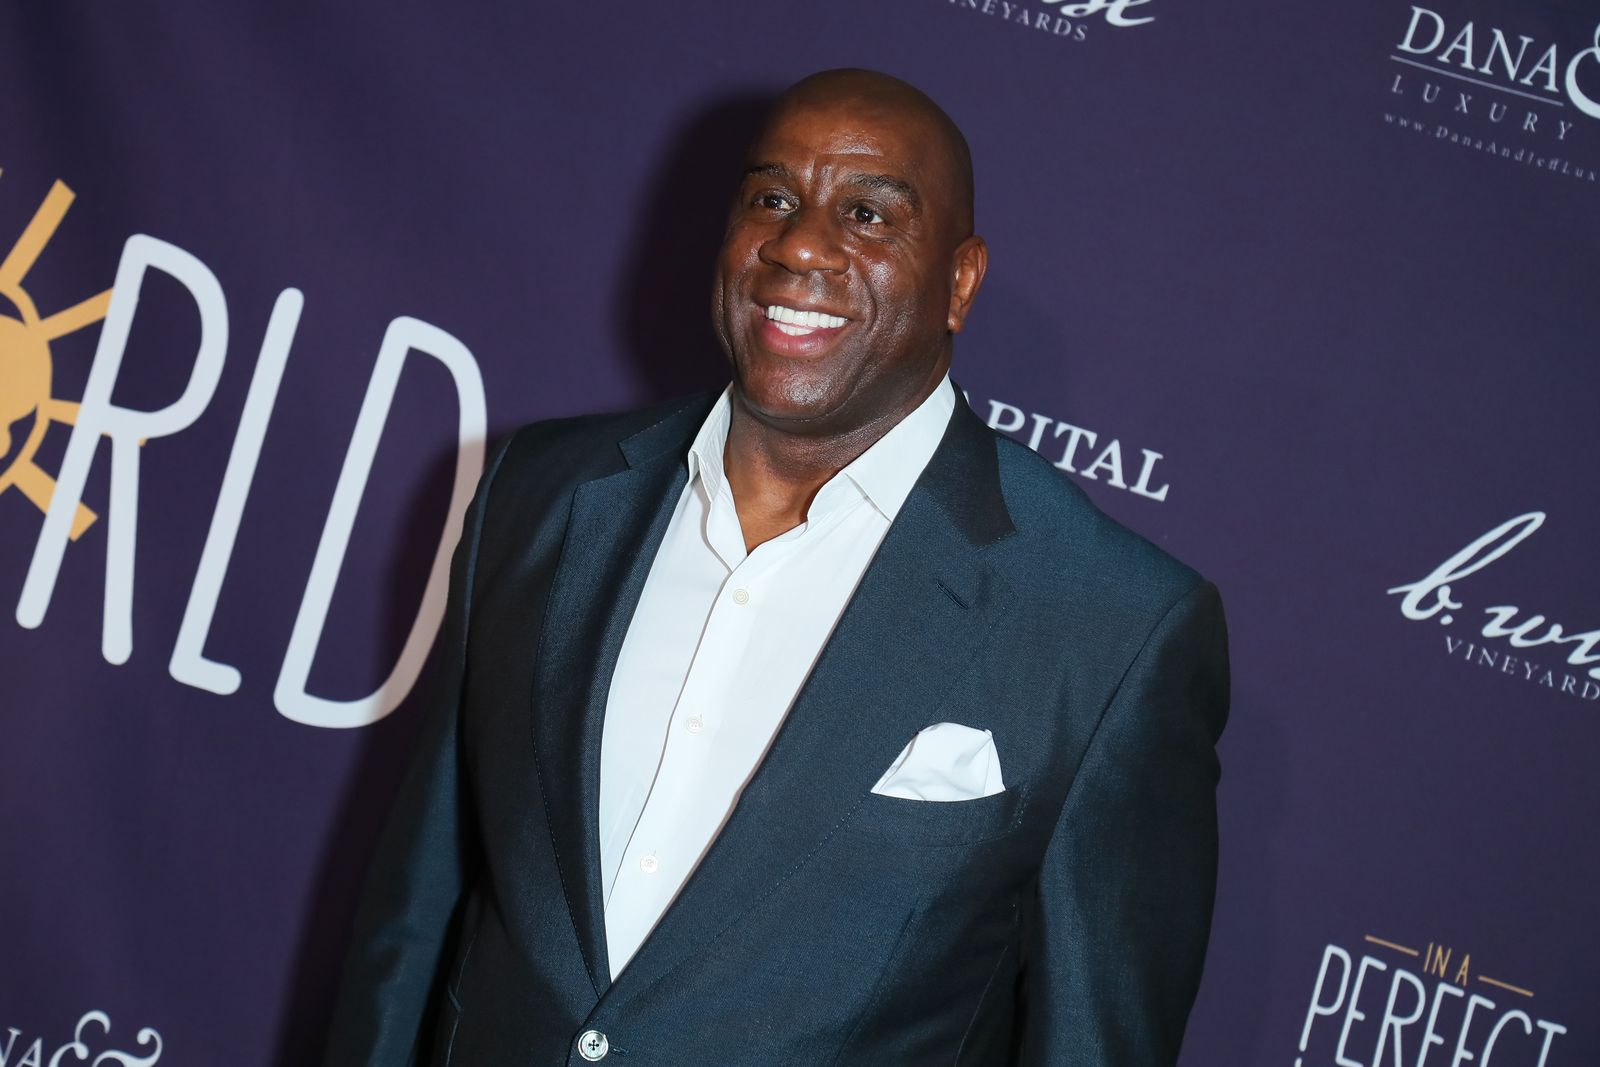 Earvin Magic Johnson at Manuela Testolini And Eric Bent Present An Evening Of Music, Art And Philanthropy on March 03, 2019 | Photo: Getty Images